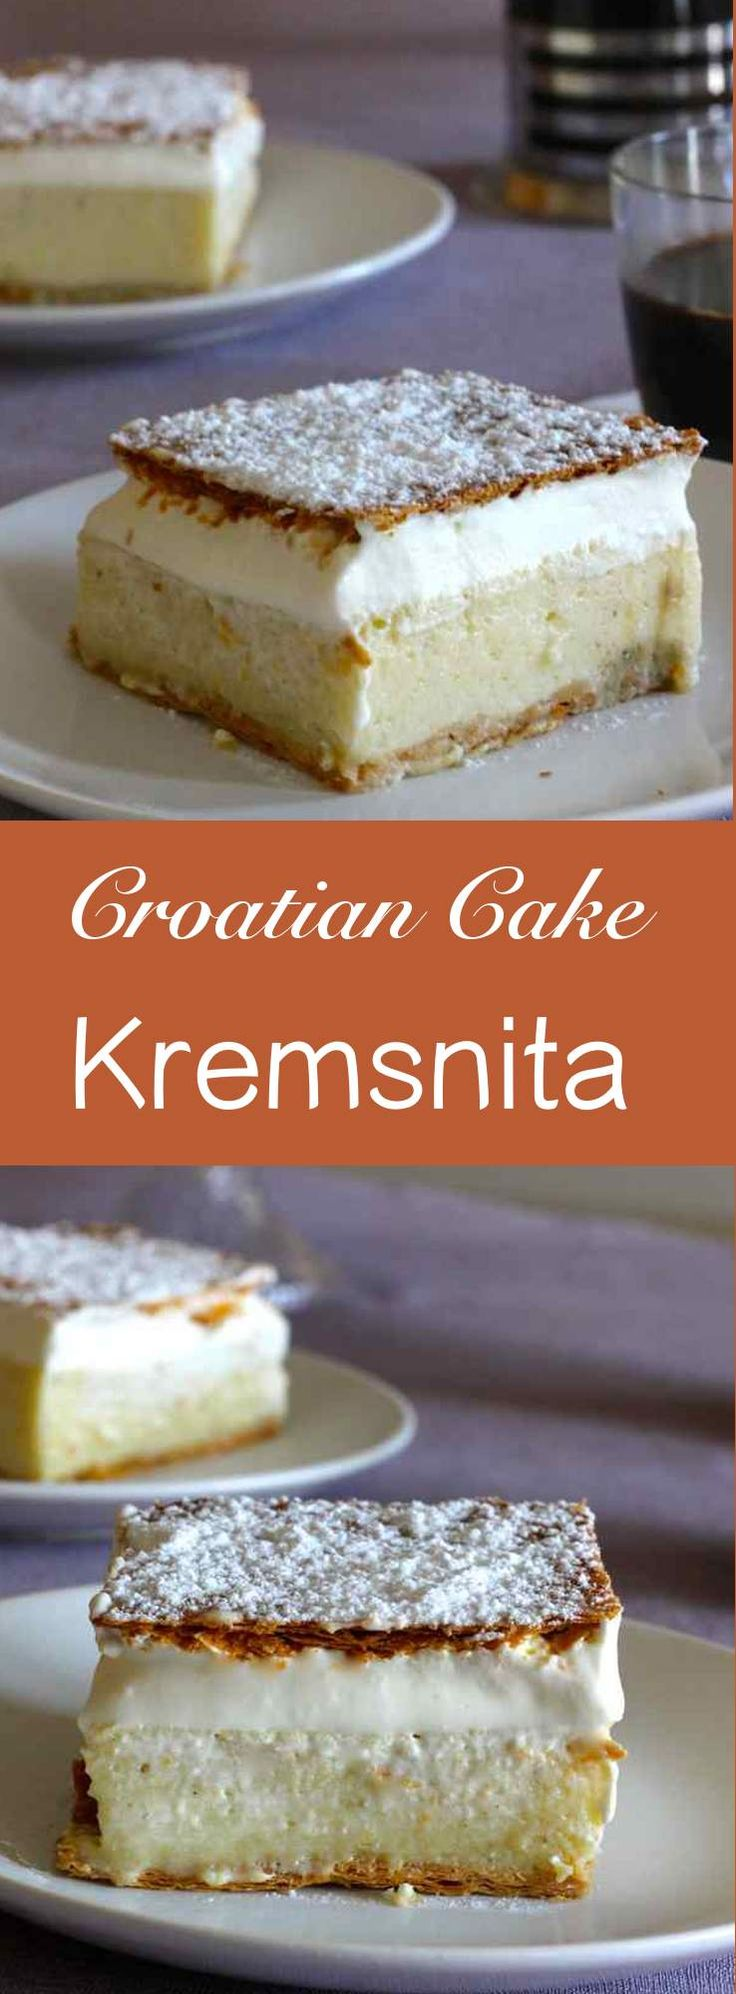 522 best croatian recipes images on pinterest croatian recipes mille feuille with vanilla cream and whipped cream popular in some central european countries but i think it will be easy to convert by simply using forumfinder Gallery